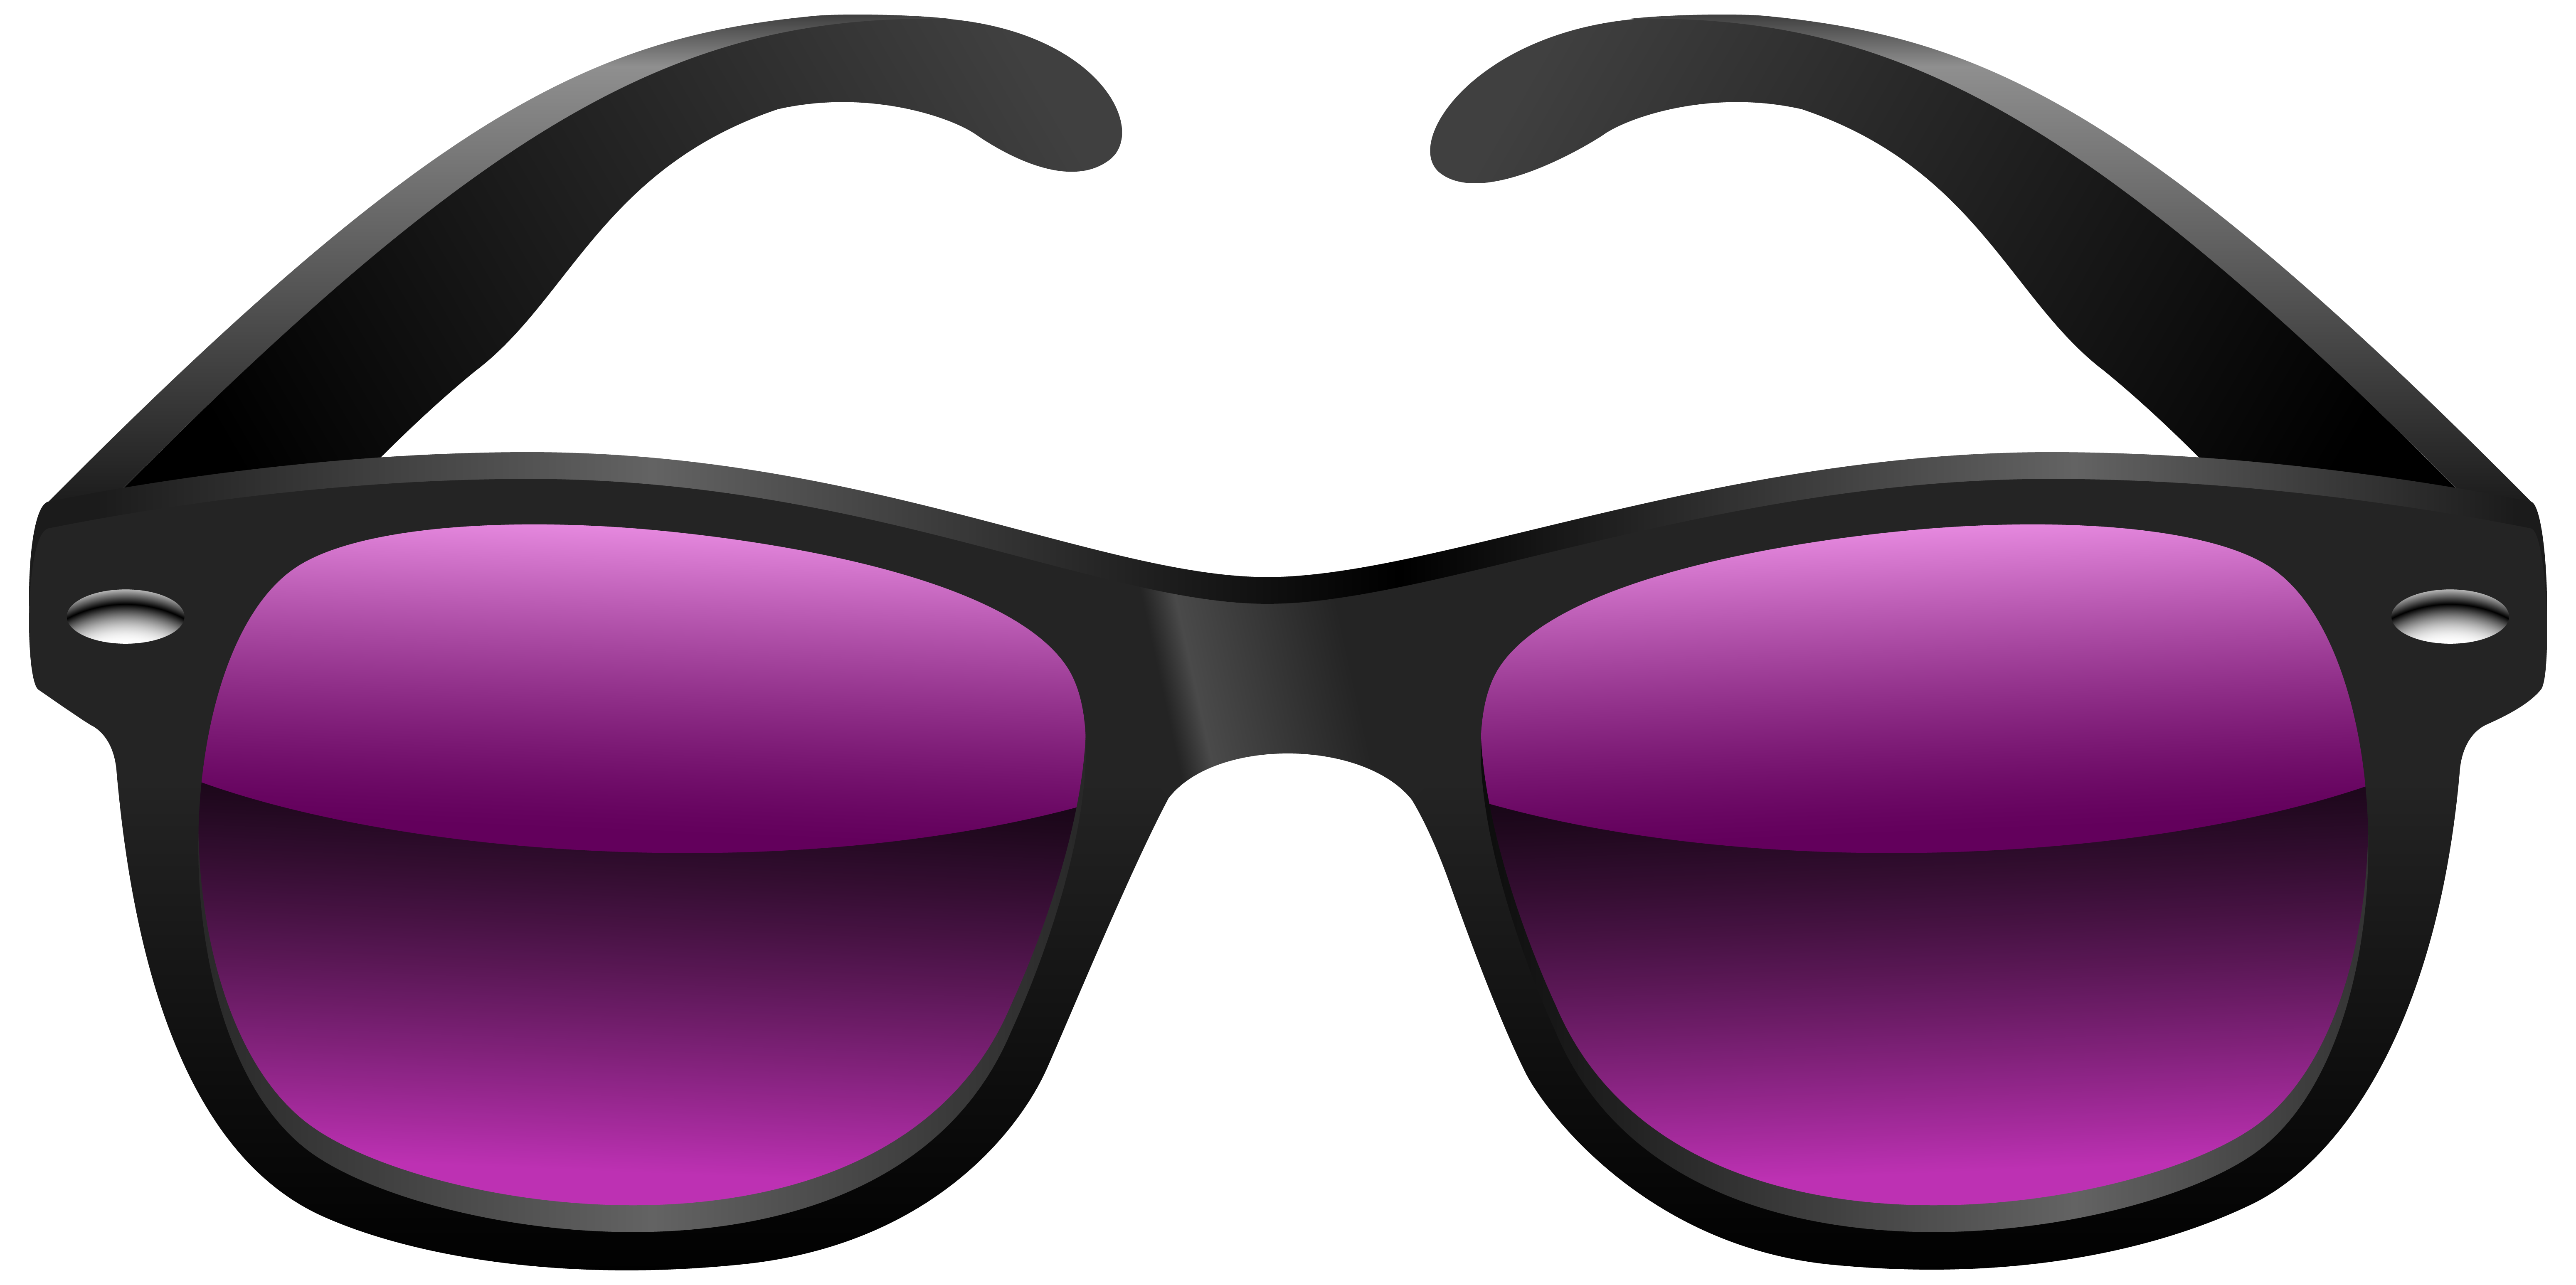 Sunglasses images clipart image transparent stock Free Sunglass Cliparts, Download Free Clip Art, Free Clip Art on ... image transparent stock